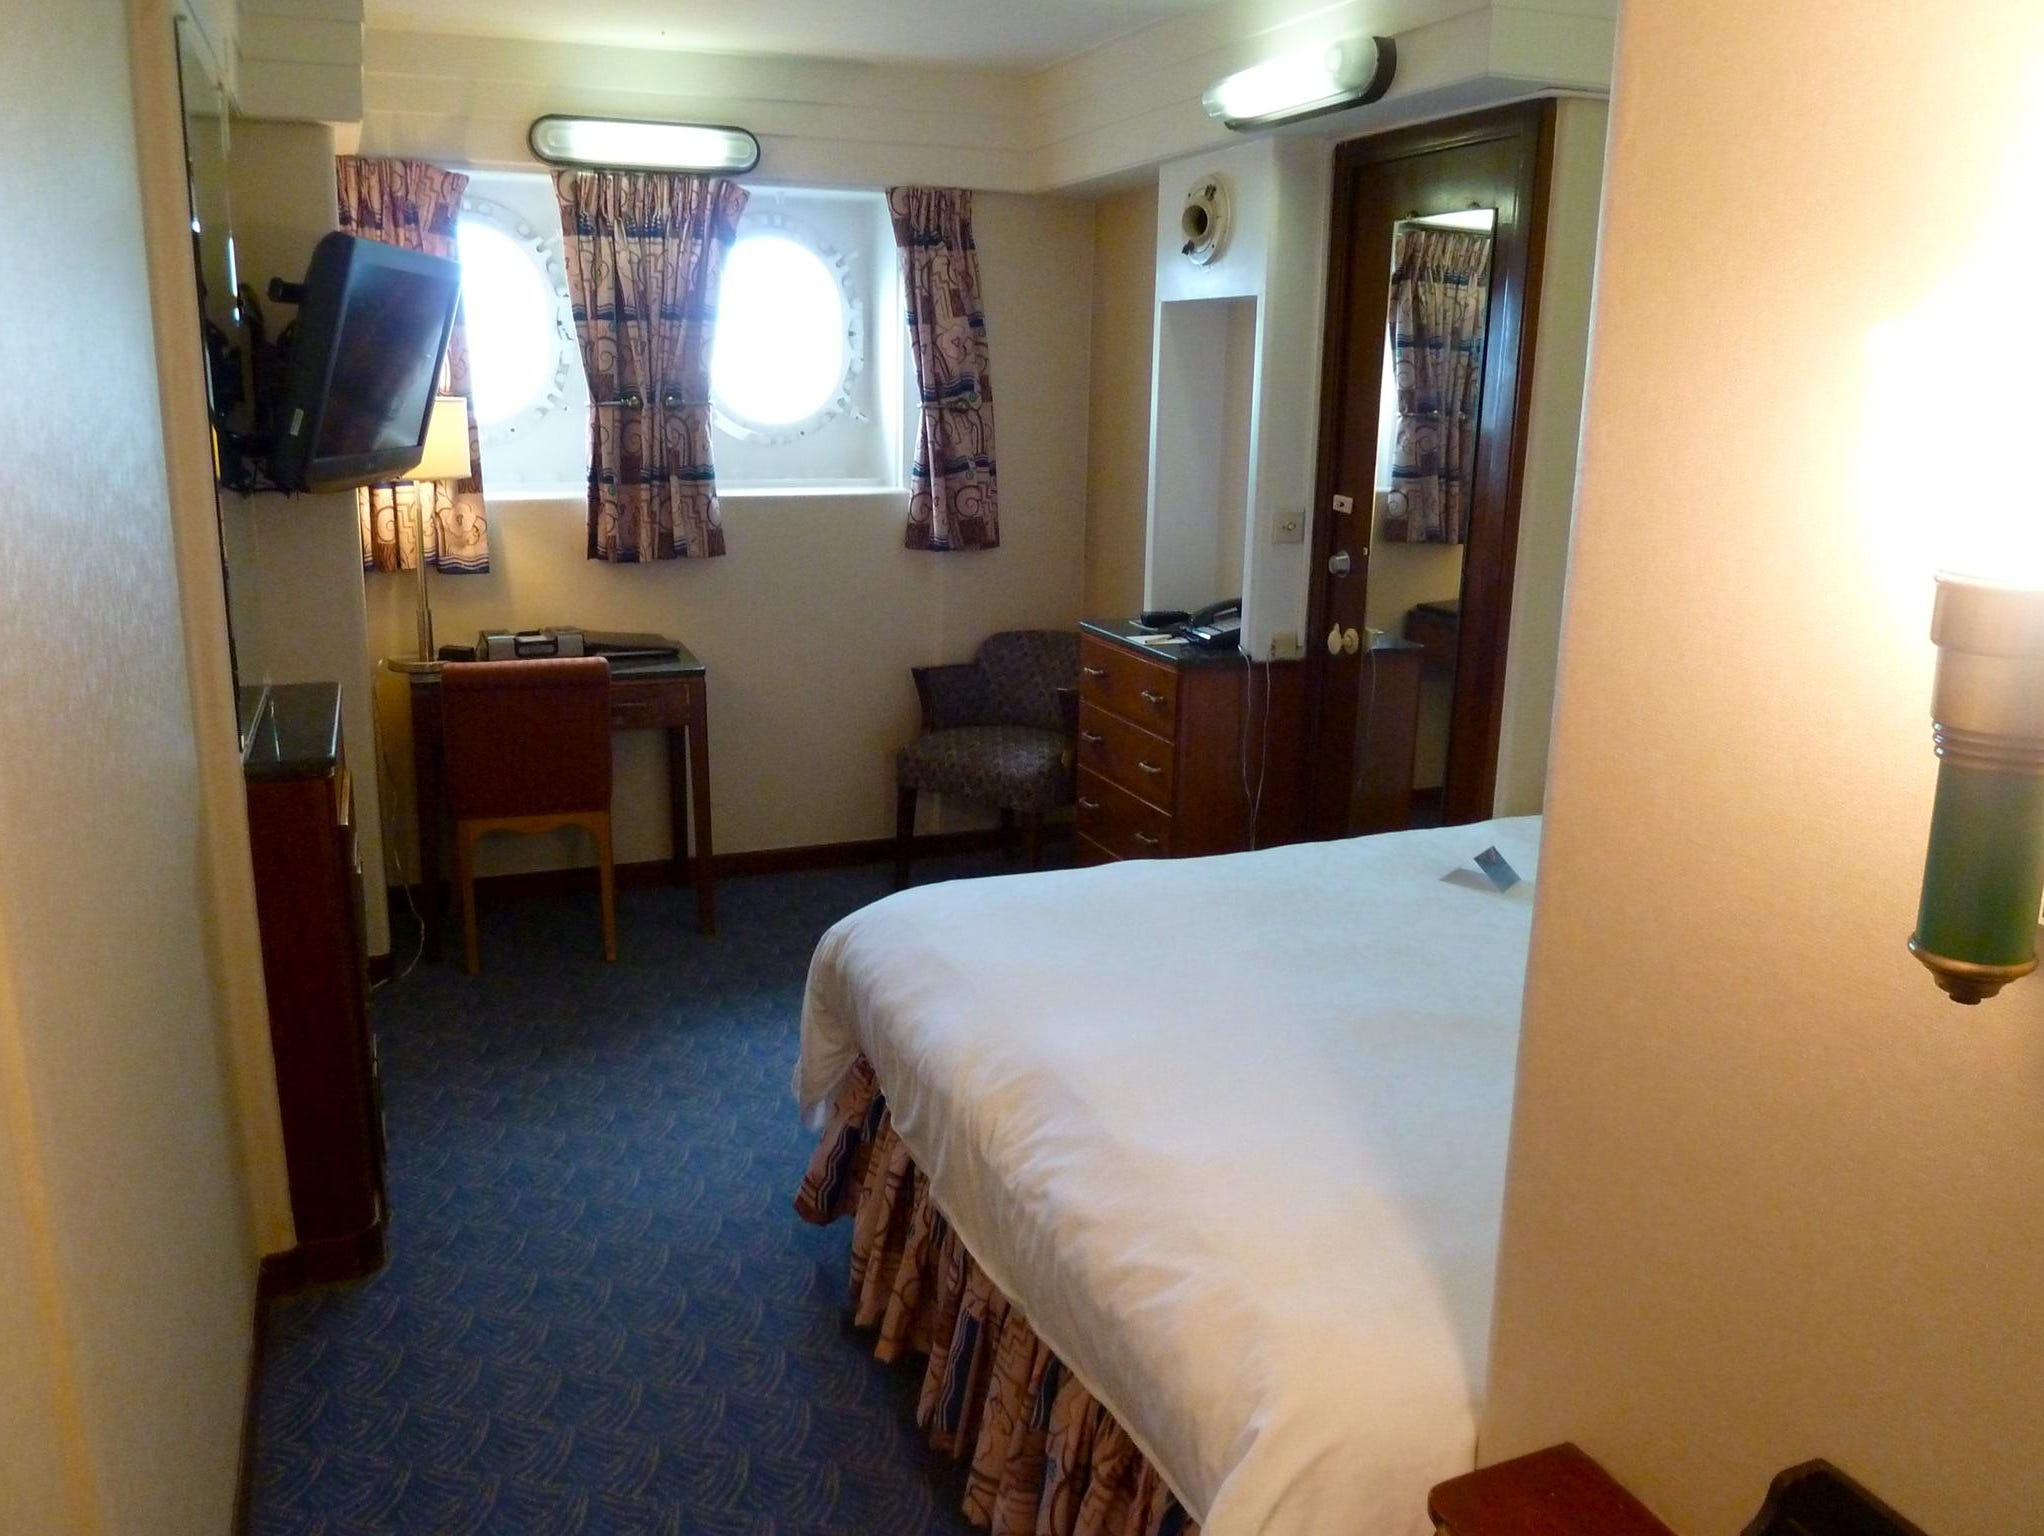 This is a semi-original cabin that has some Cunard-era fittings and furniture but no wood paneling.